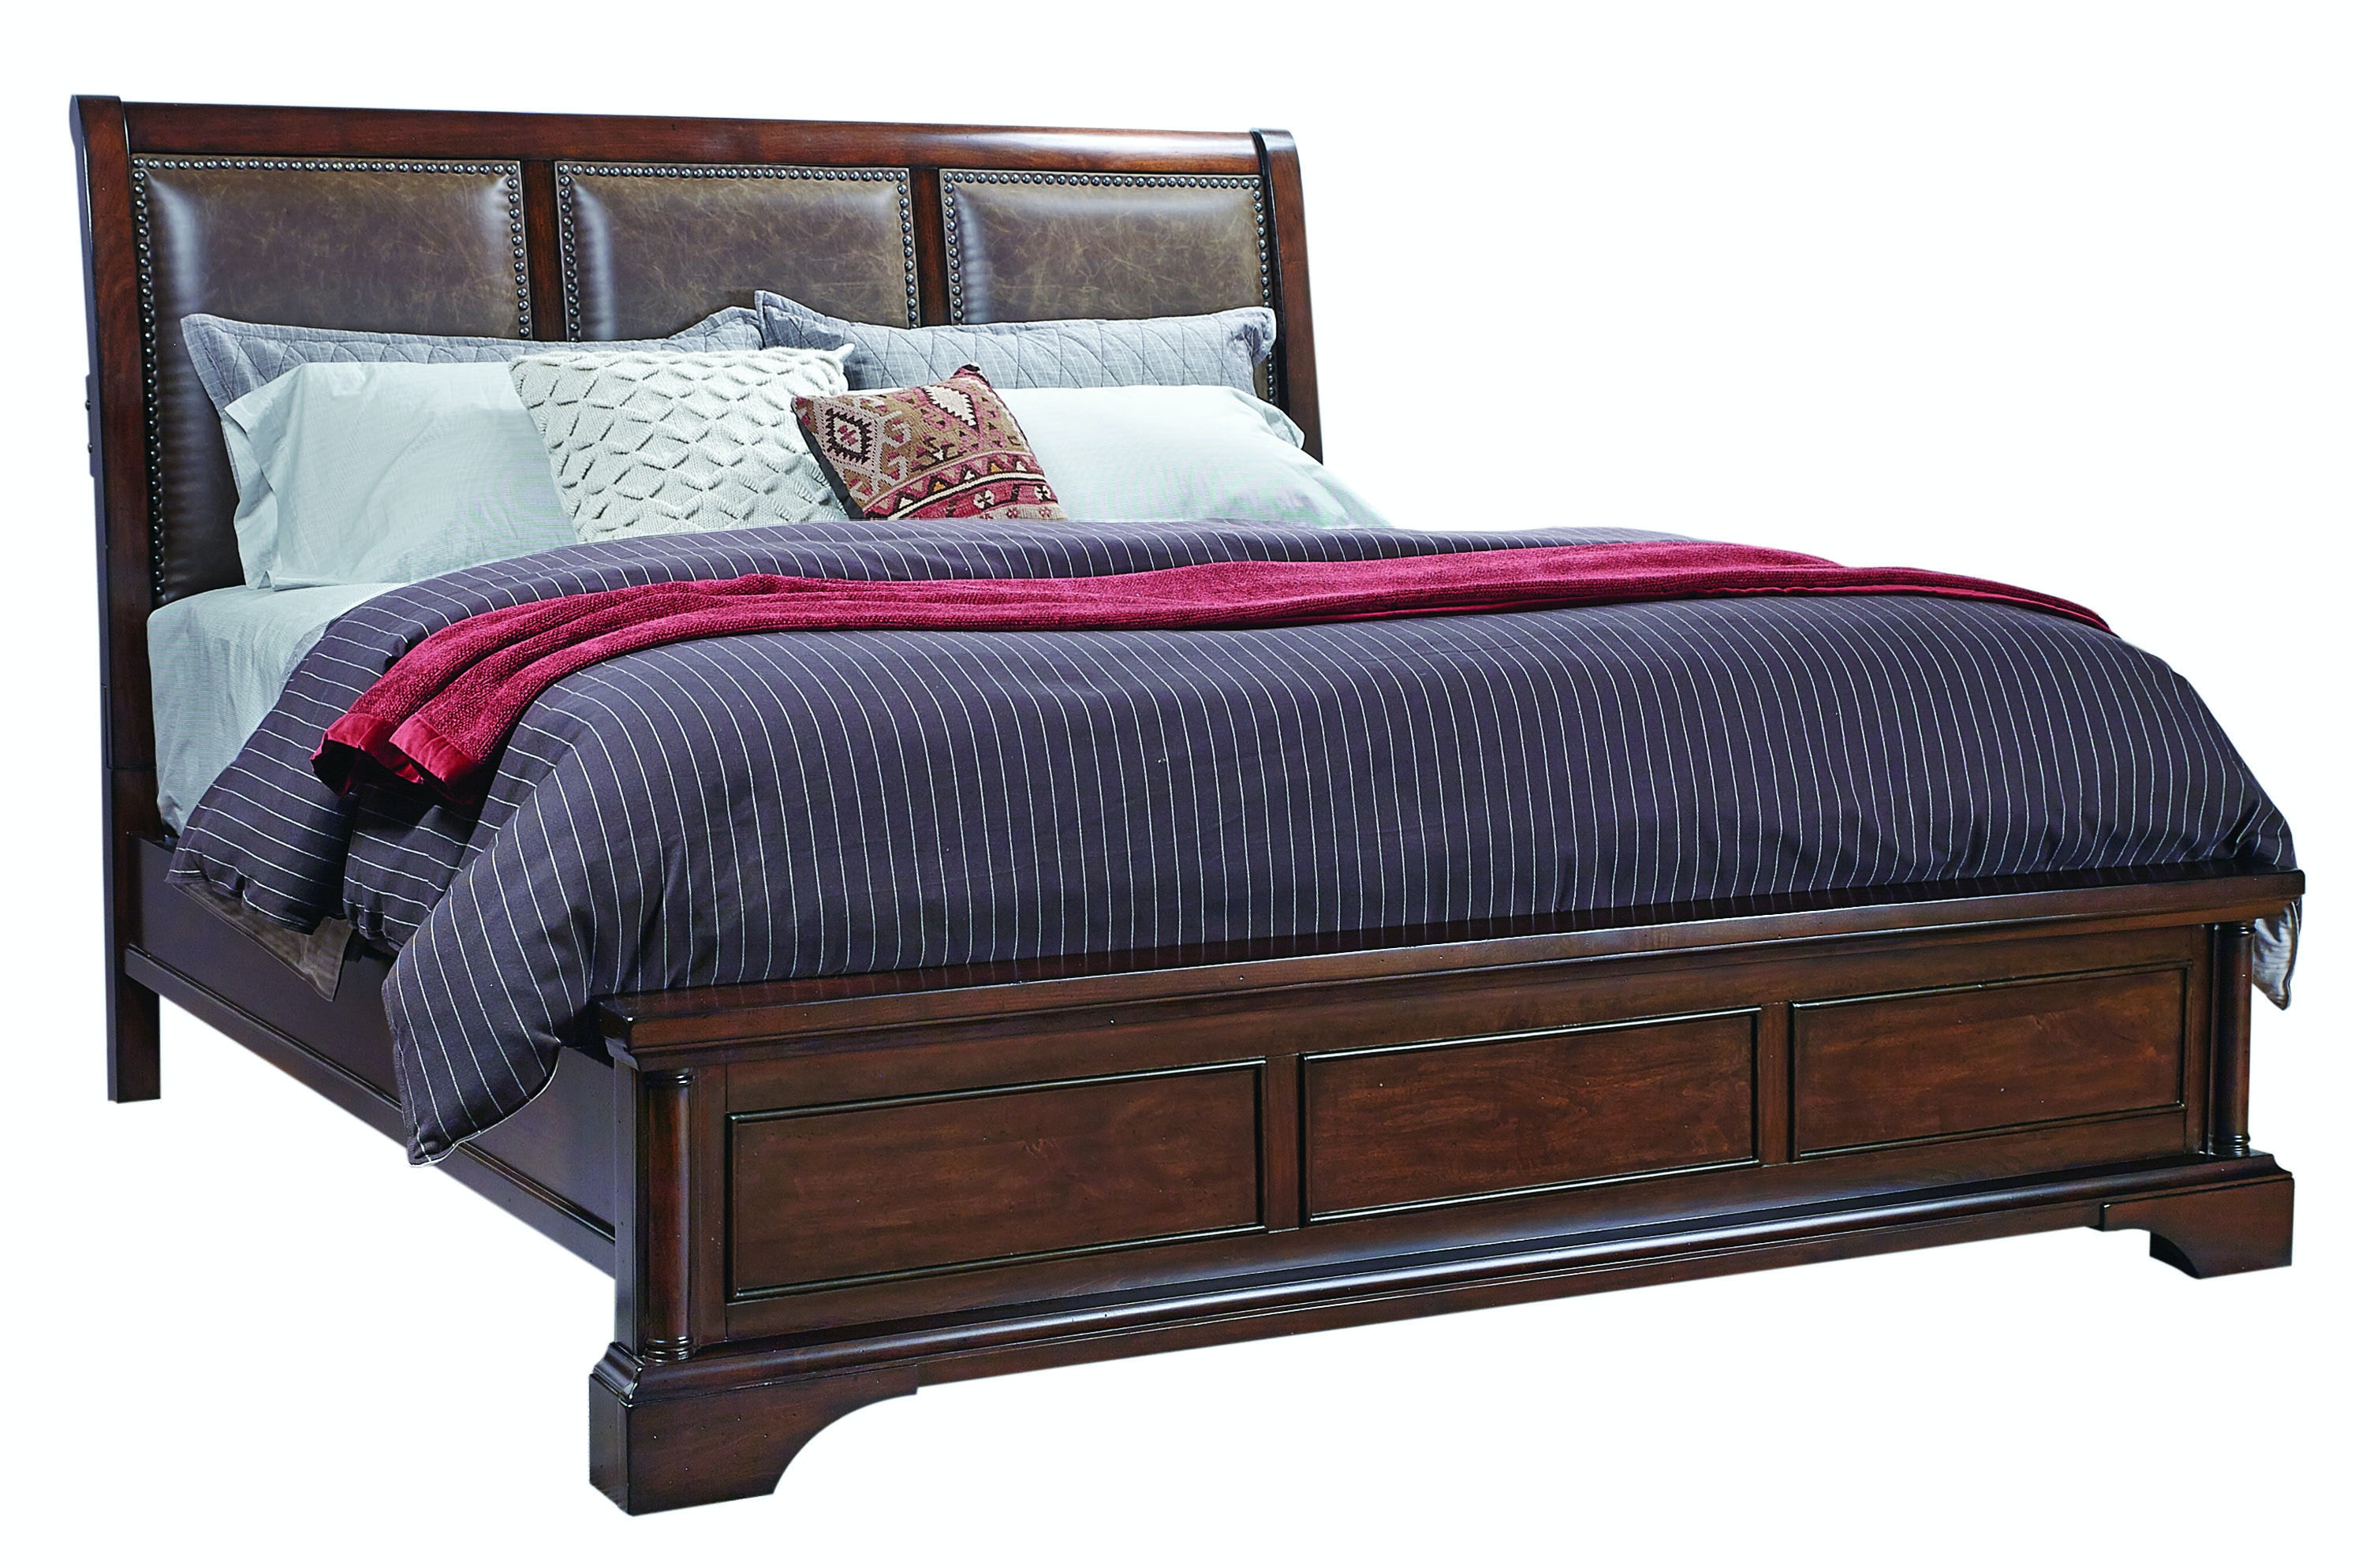 bancroft upholstered sleigh bed - Upholstered Sleigh Bed